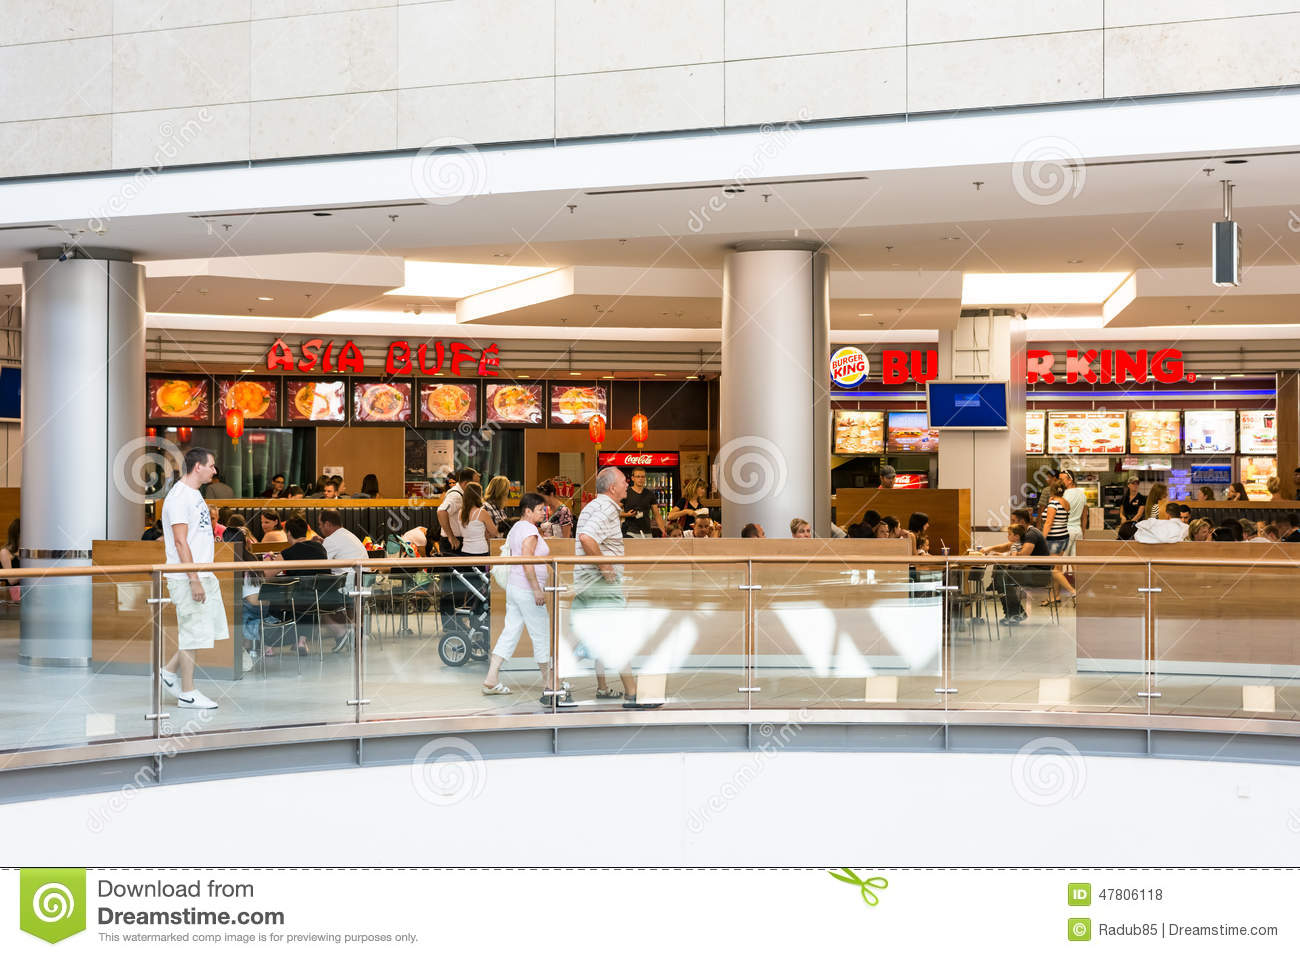 d1ebe01d28eb Forum Debrecen Shopping Mall Editorial Stock Photo - Image of food ...